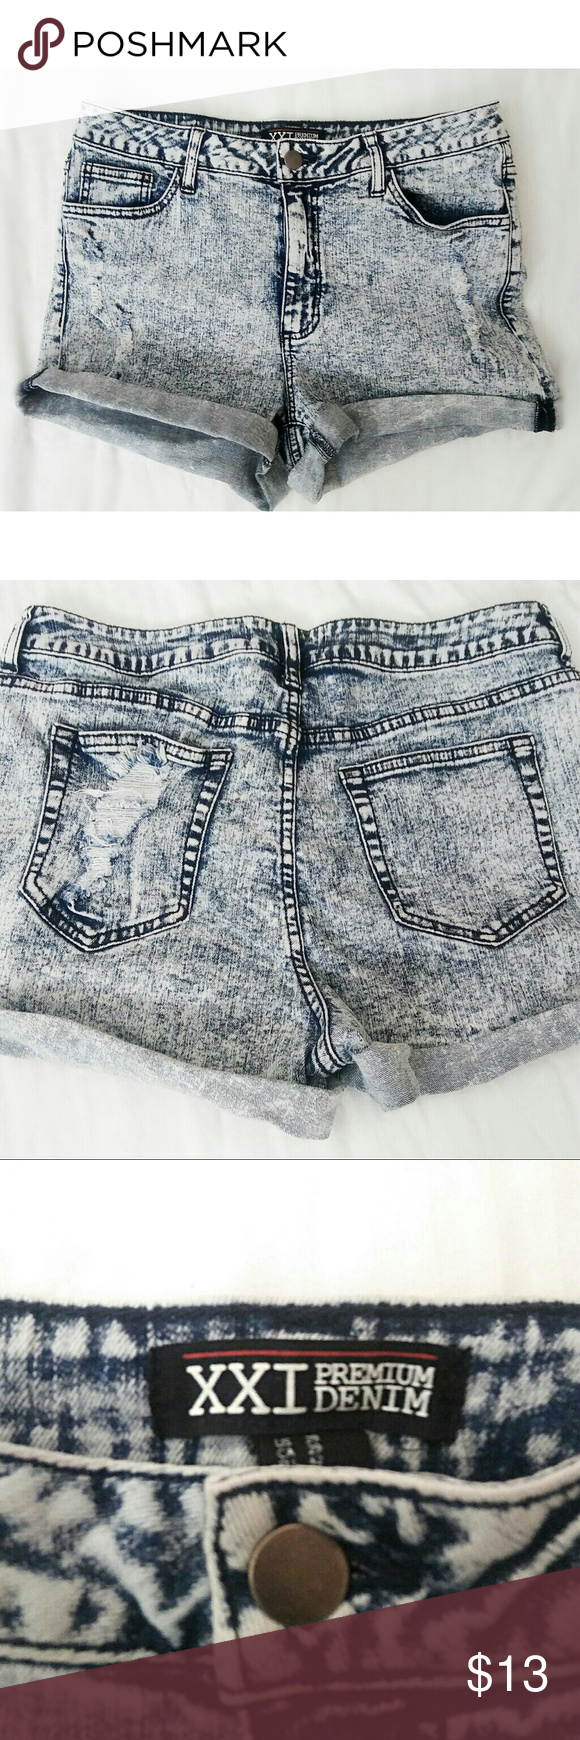 XXI Premium Acid Wash Denim shorts Stretch denim fabric in great condition. Forever 21 Shorts